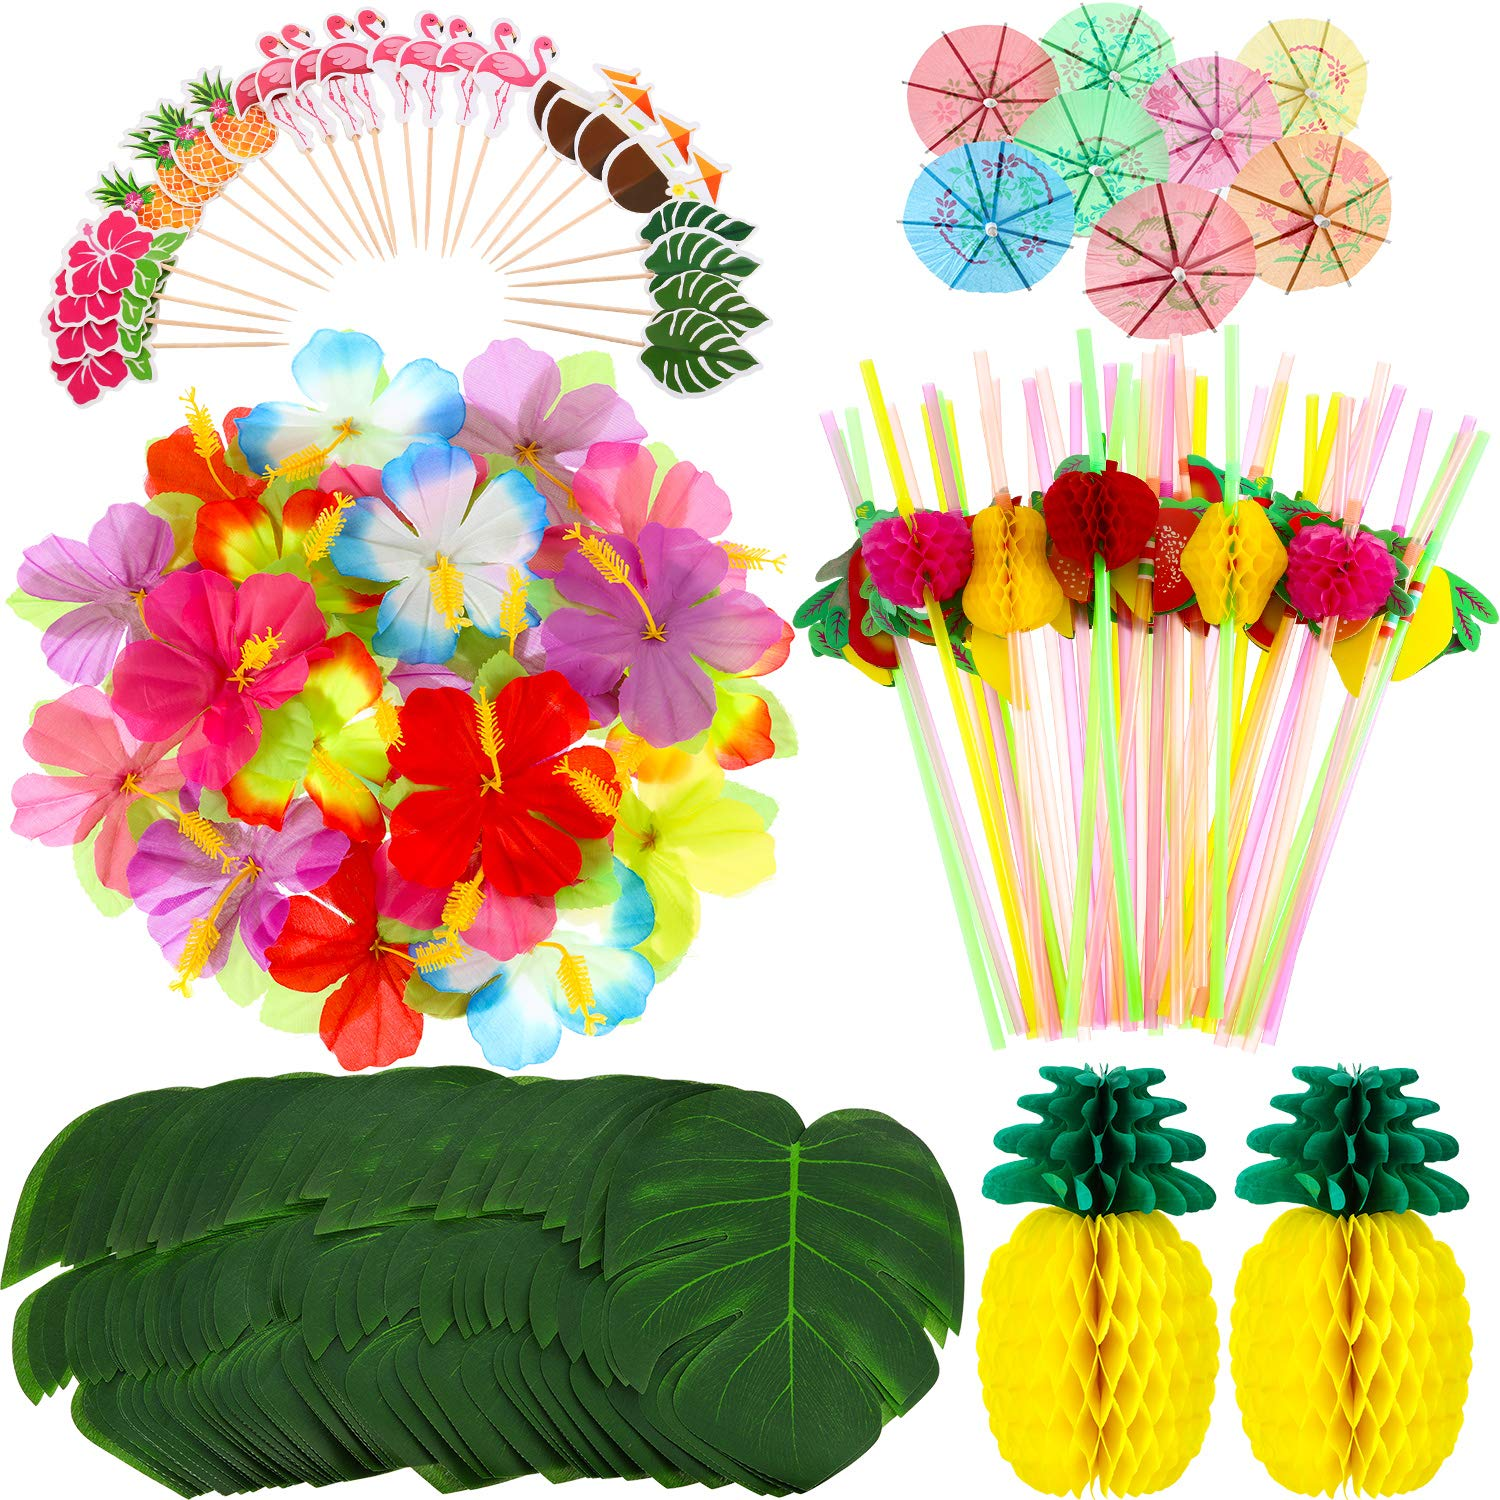 198 Pieces Hawaiian Party Decorations Set Including 2 Tissue Paper Pineapples 24 Tropical Palm Leaves 24 Hibiscus Flowers 48 Flamingo Cupcake Toppers